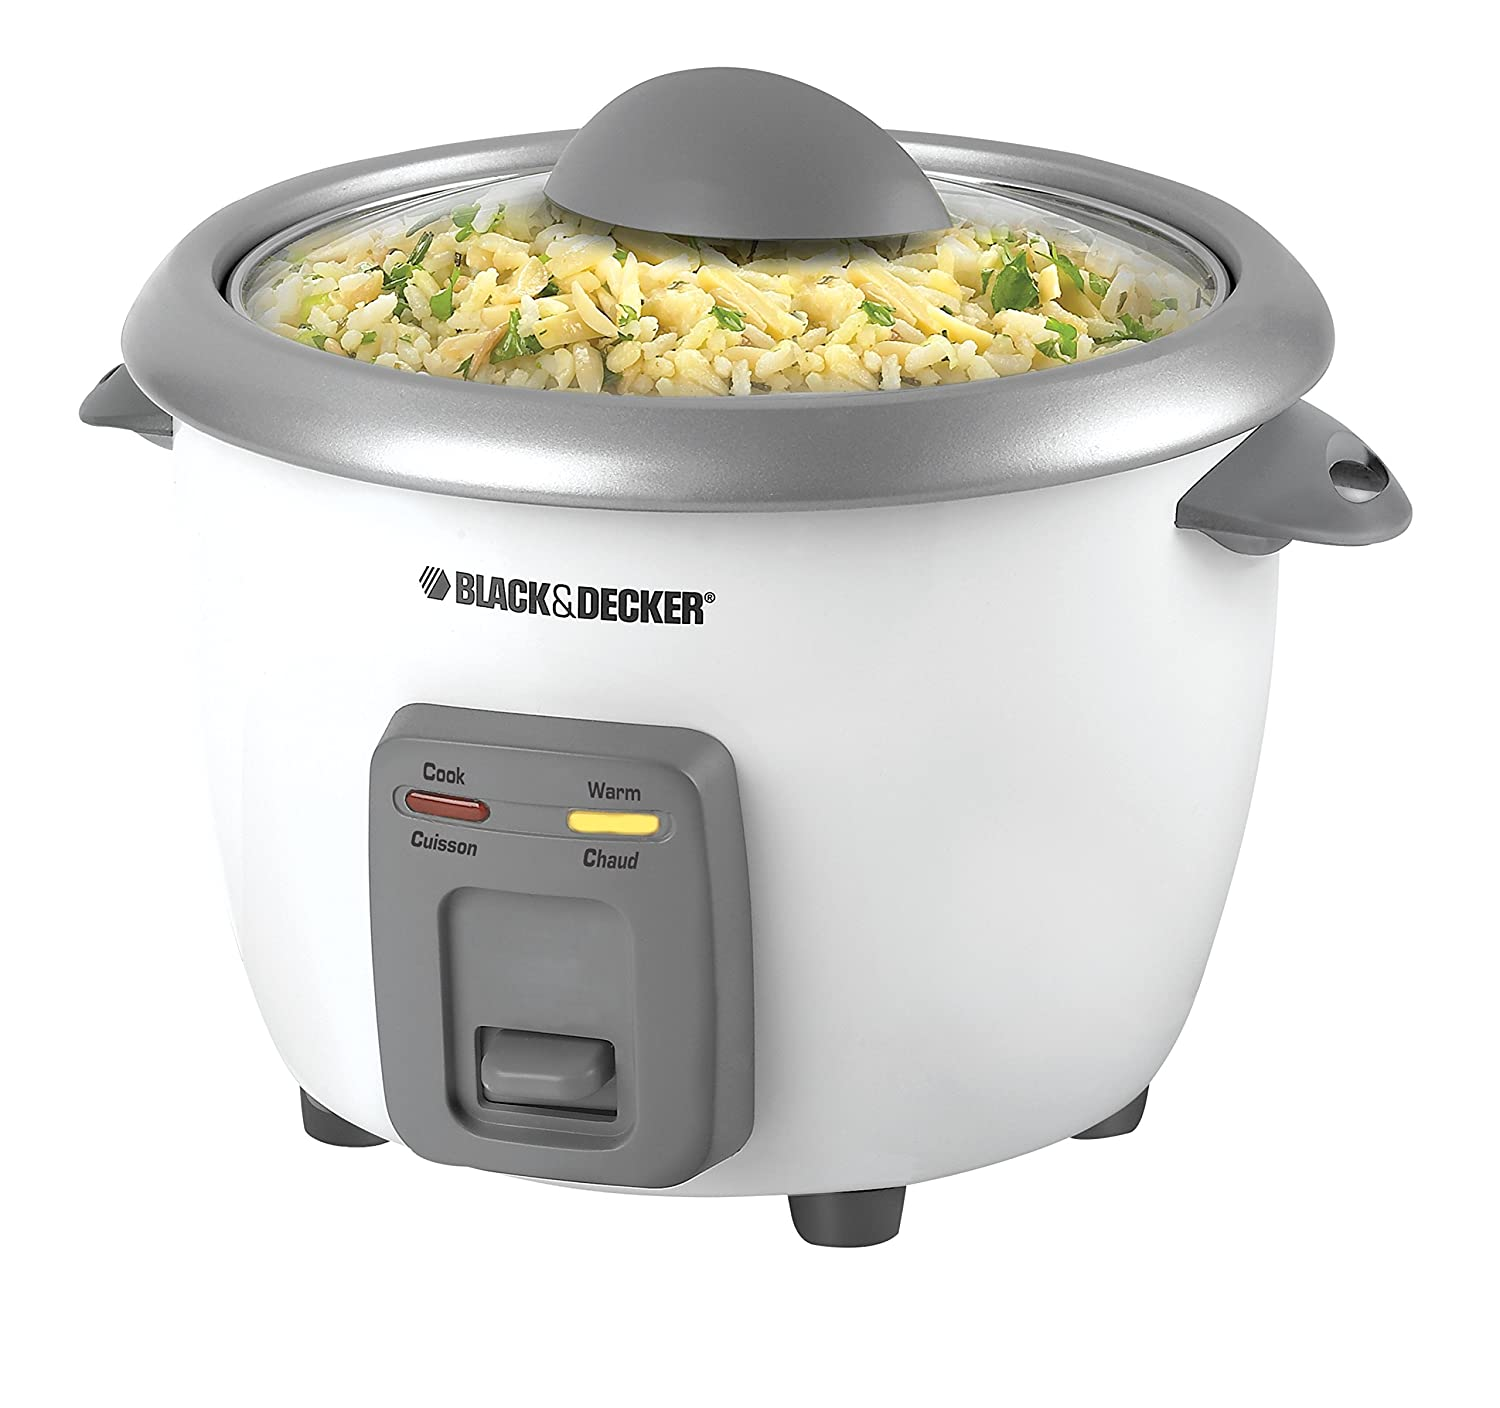 BLACK+DECKER 3-Cup Dry/6-Cup Cooked Rice Cooker, White, RC3406C